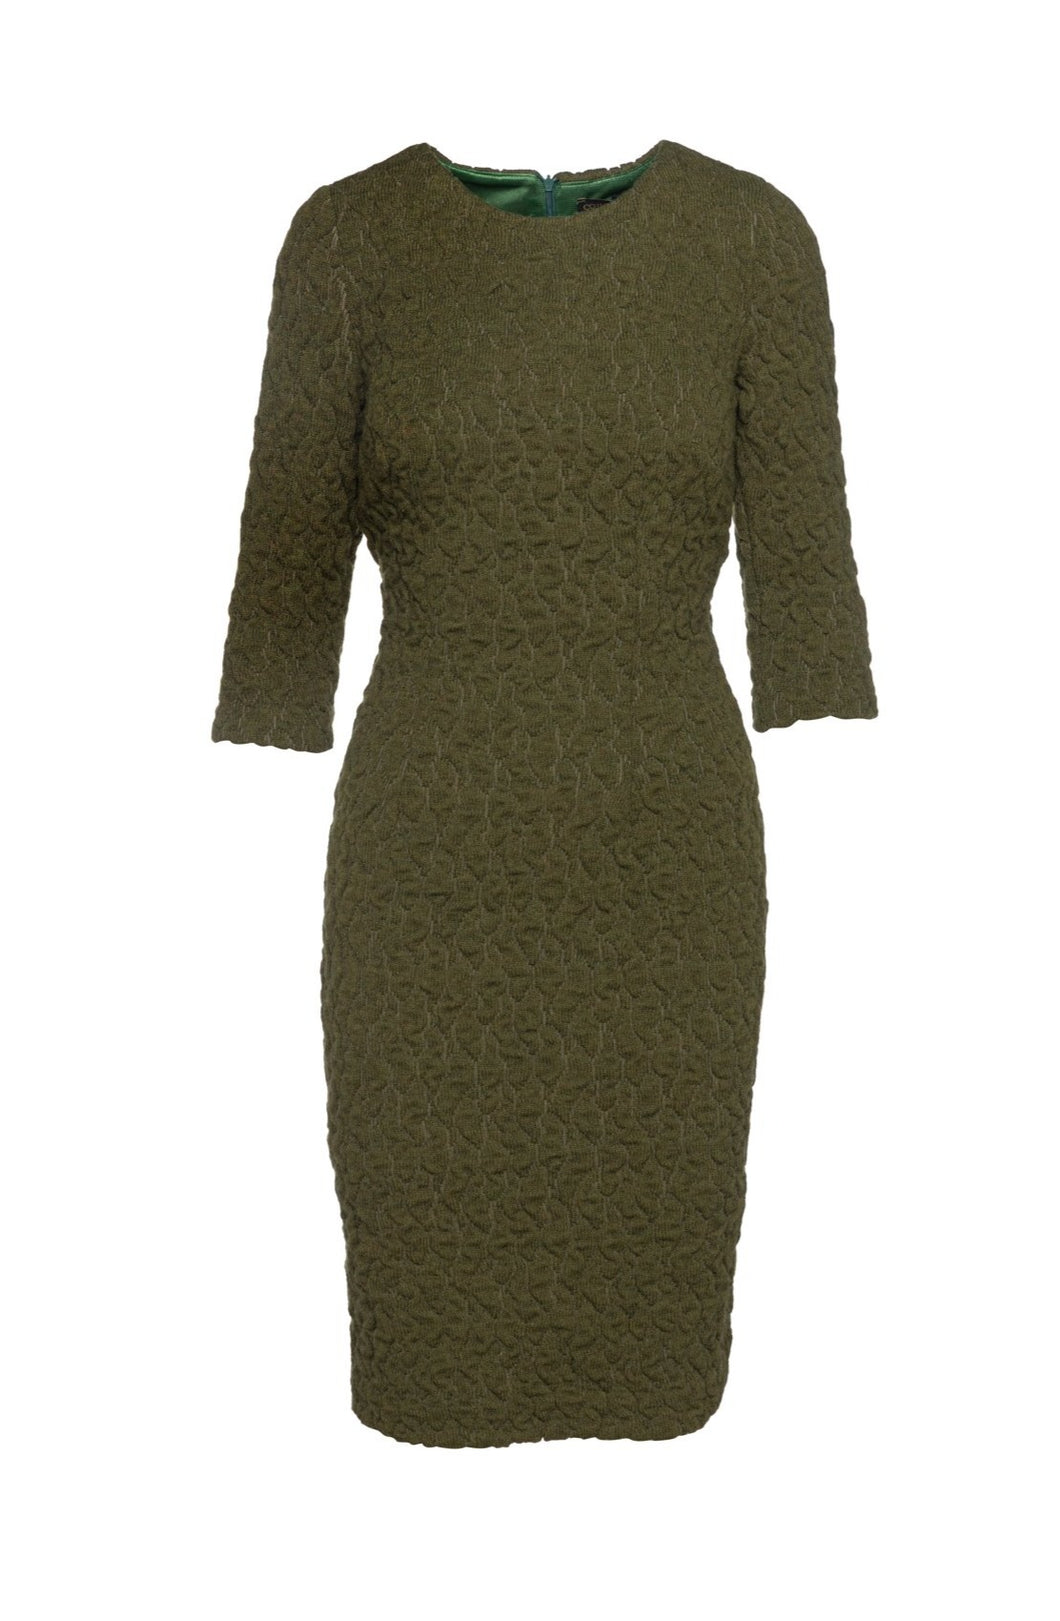 Khaki Jacquard Dress By Conquista Fashion